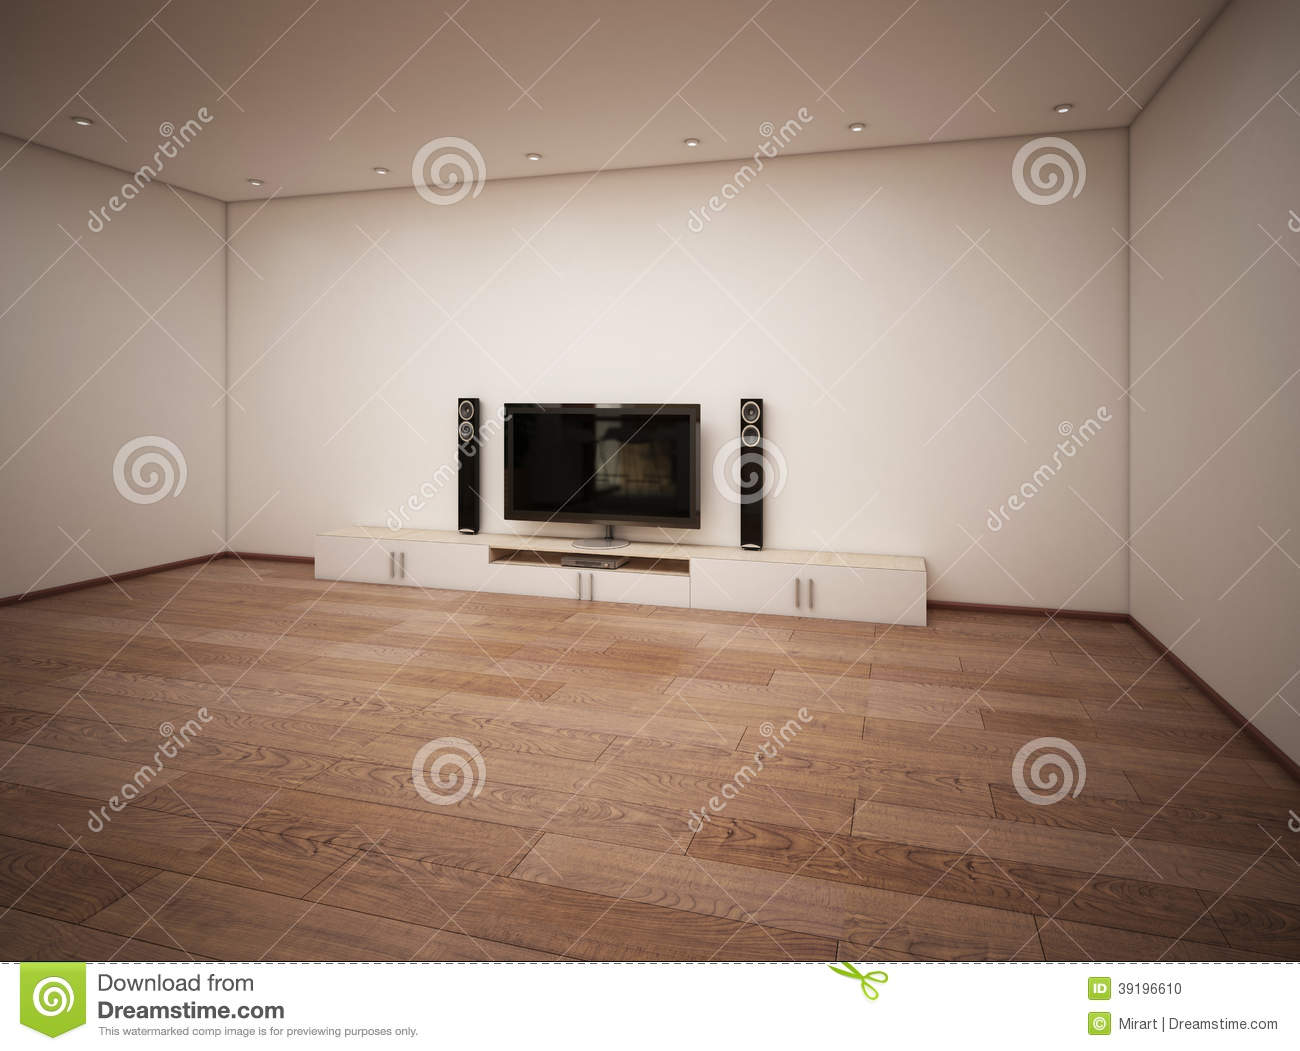 Empty Interior Of Room With Tv Stock Illustration Illustration Of Living Contemporary 39196610